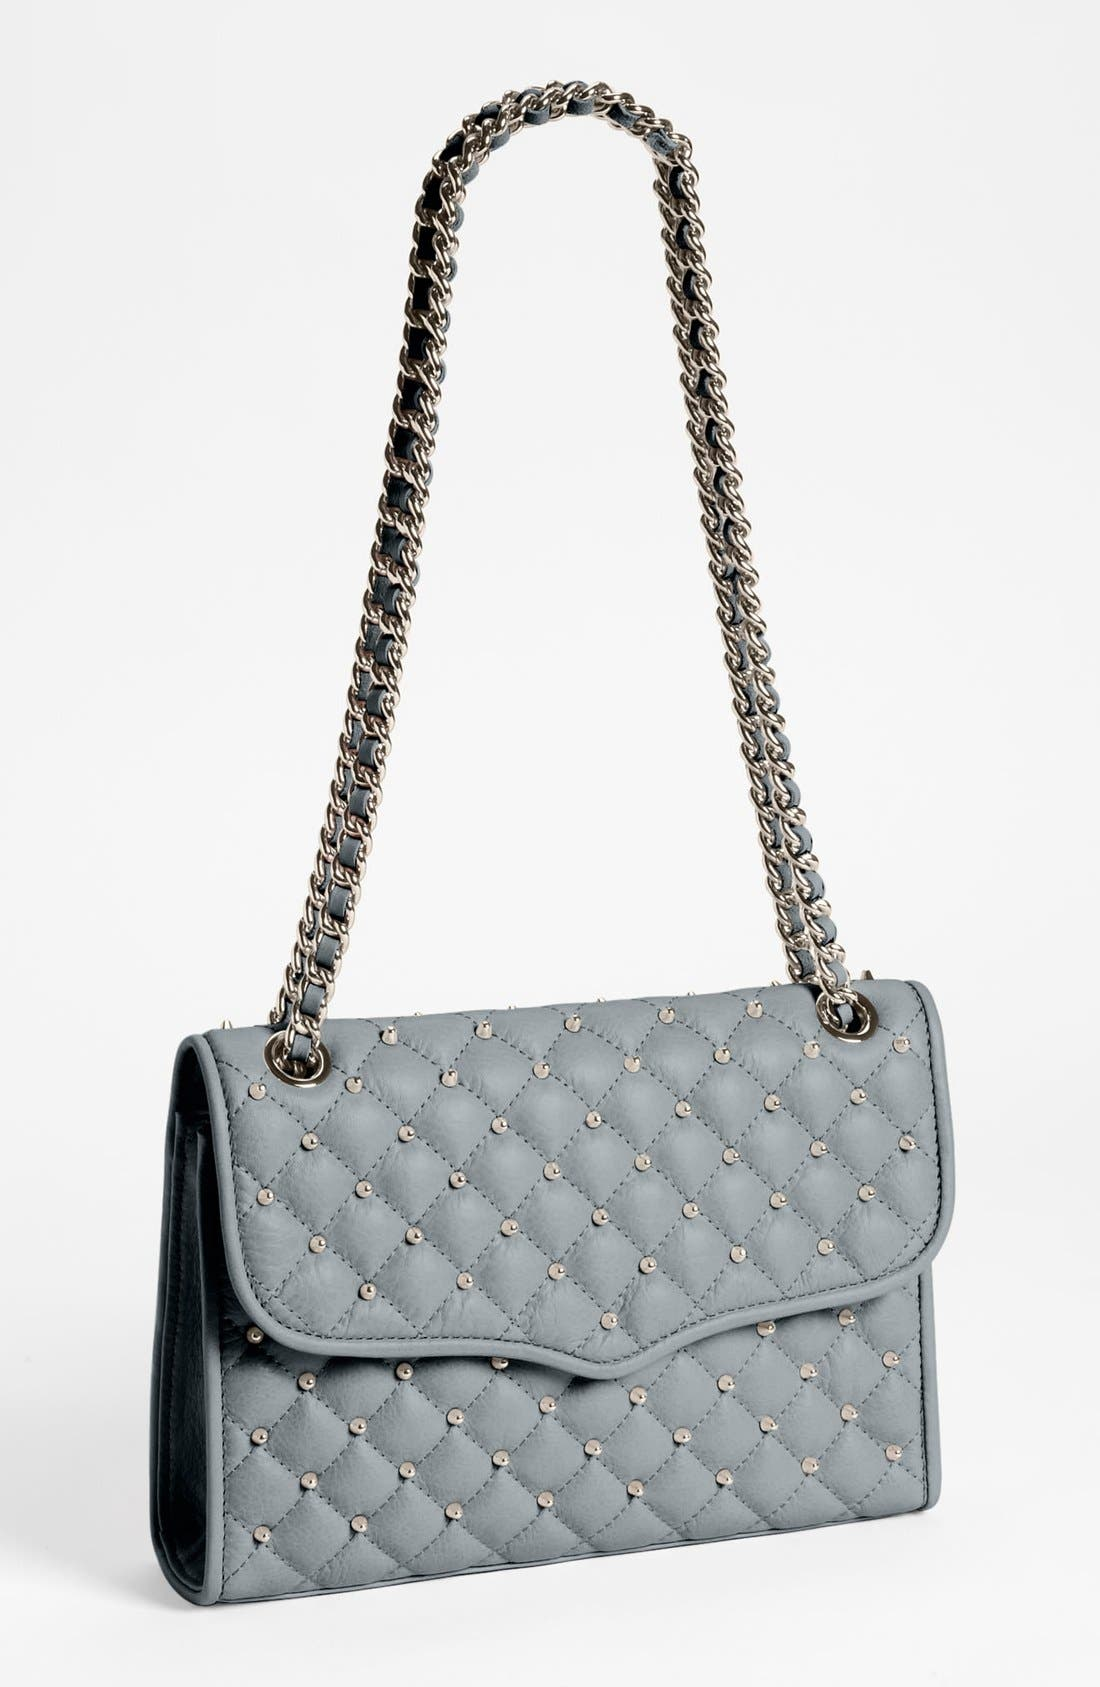 Main Image - Rebecca Minkoff 'Affair' Leather Shoulder Bag